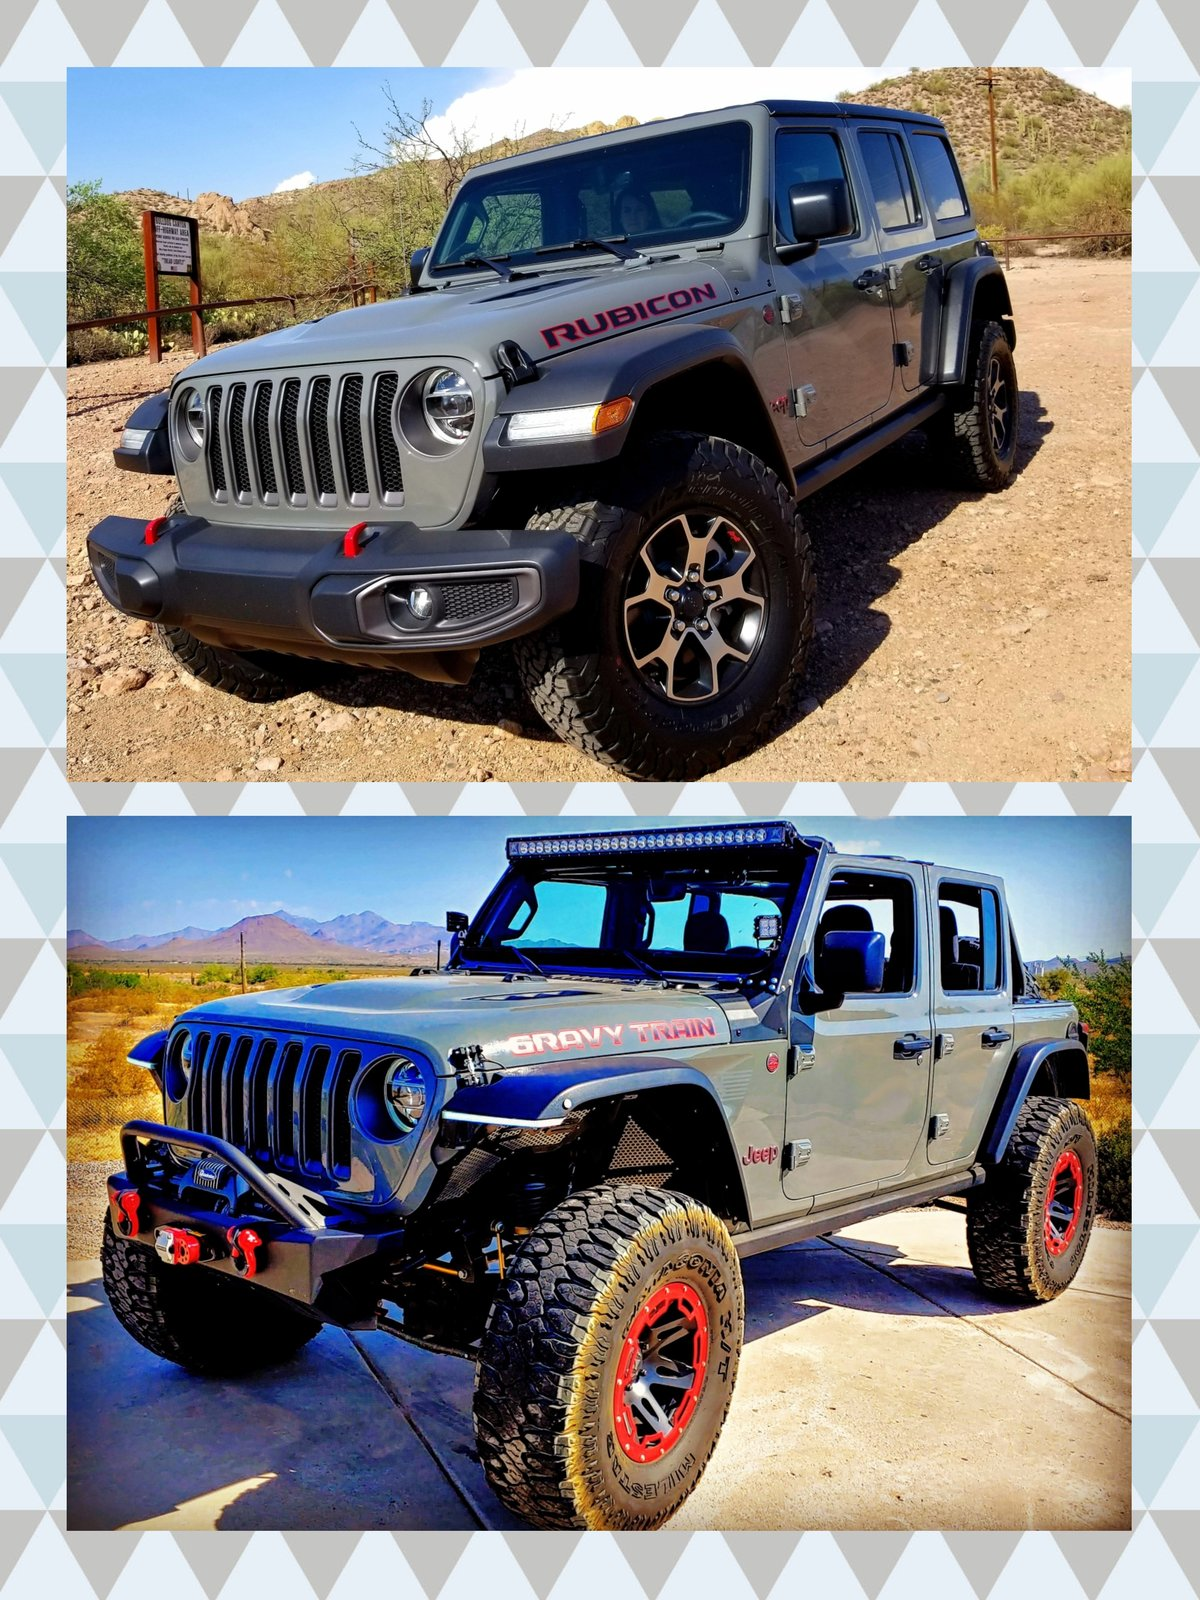 Lift Kit Before And After : before, after, PICS!, Before, After, Pics!, 2018+, Wrangler, Forums, Rubicon,, Sahara,, Sport,, Unlimited, JLwranglerforums.com